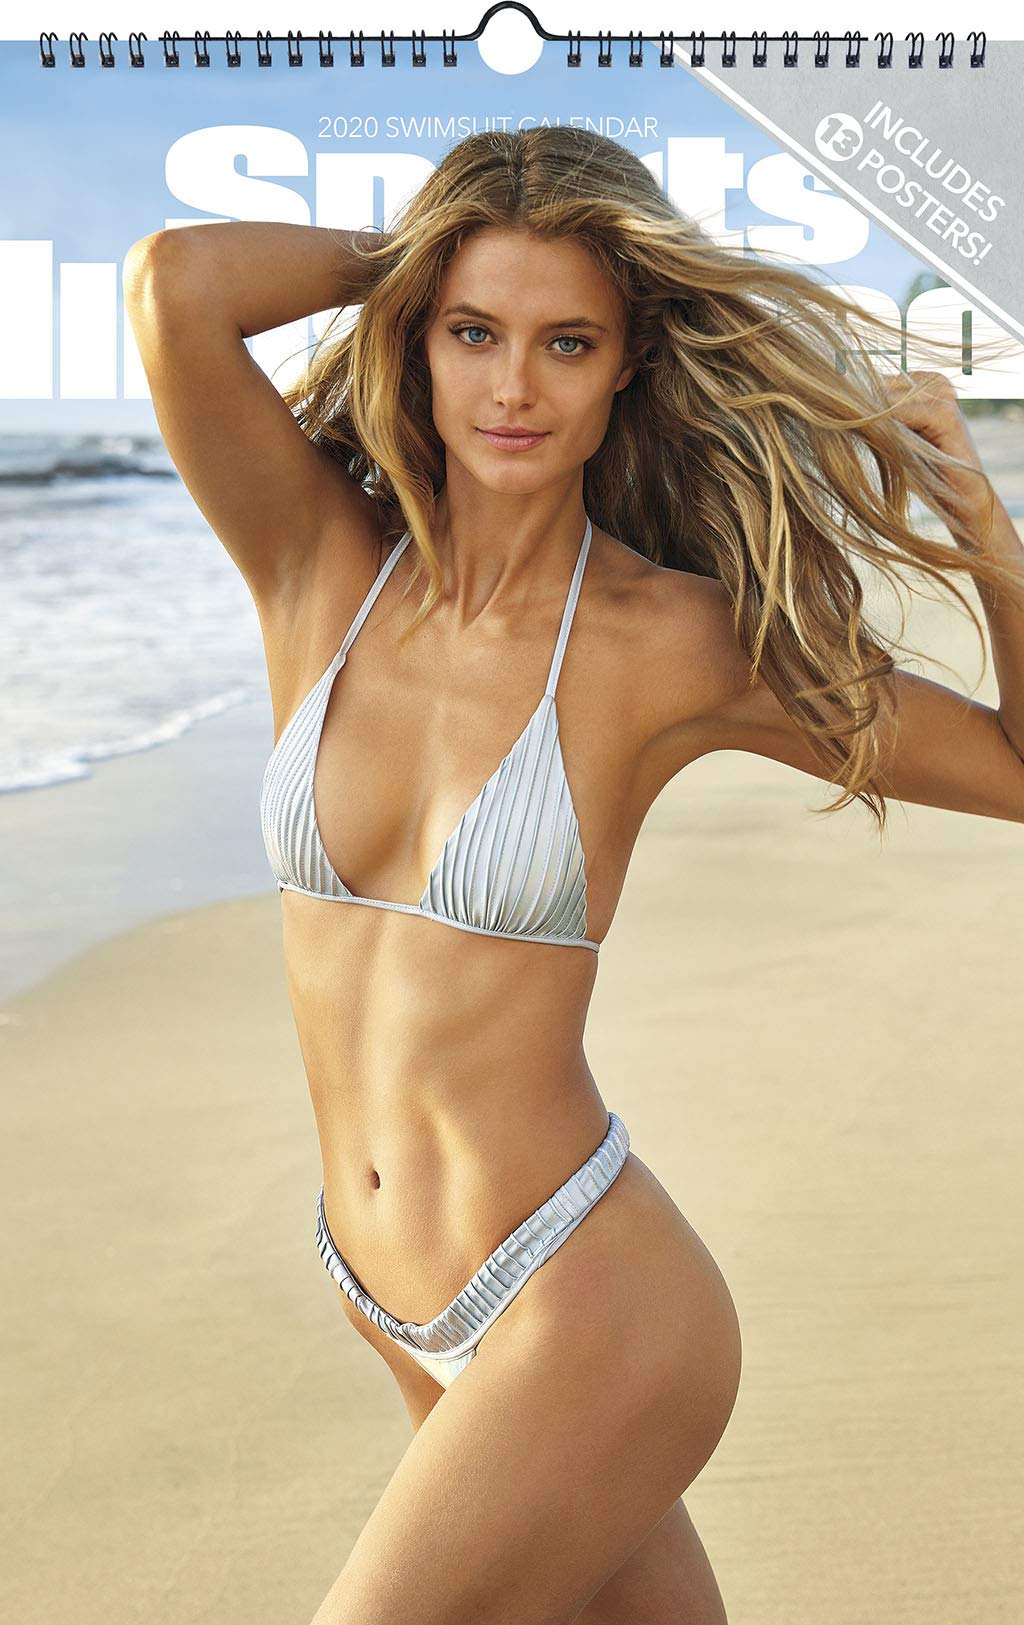 Sports Illustrated Swimsuit 2020 Oversized Calendar Trends International 9781438871578 Amazon Com Books